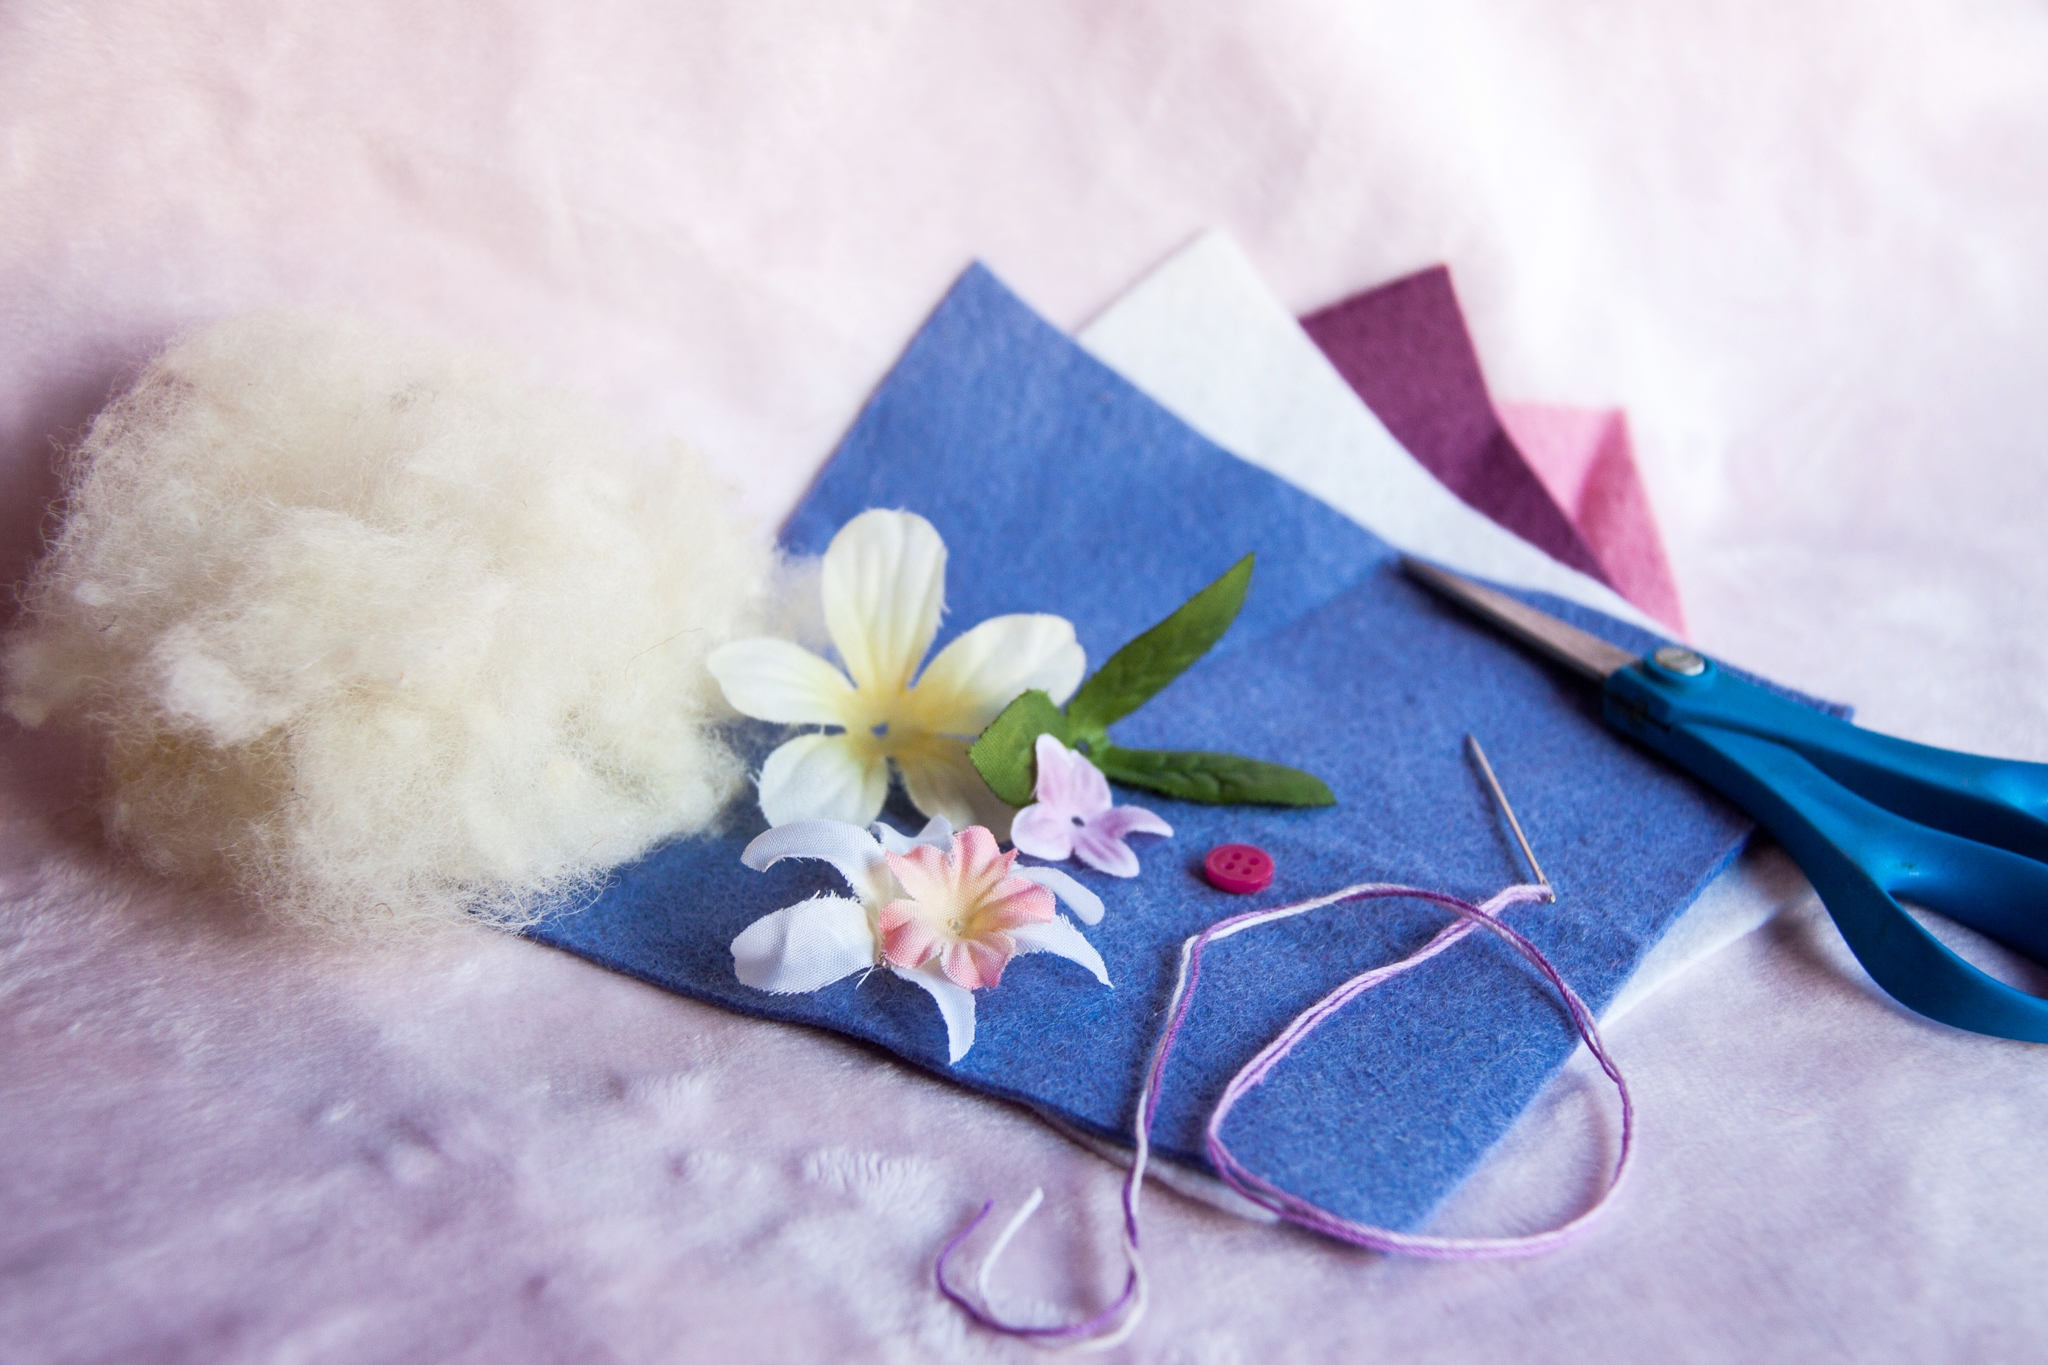 Tutorial to Sew Felt Hearts with Children by Forest Fairy Crafts